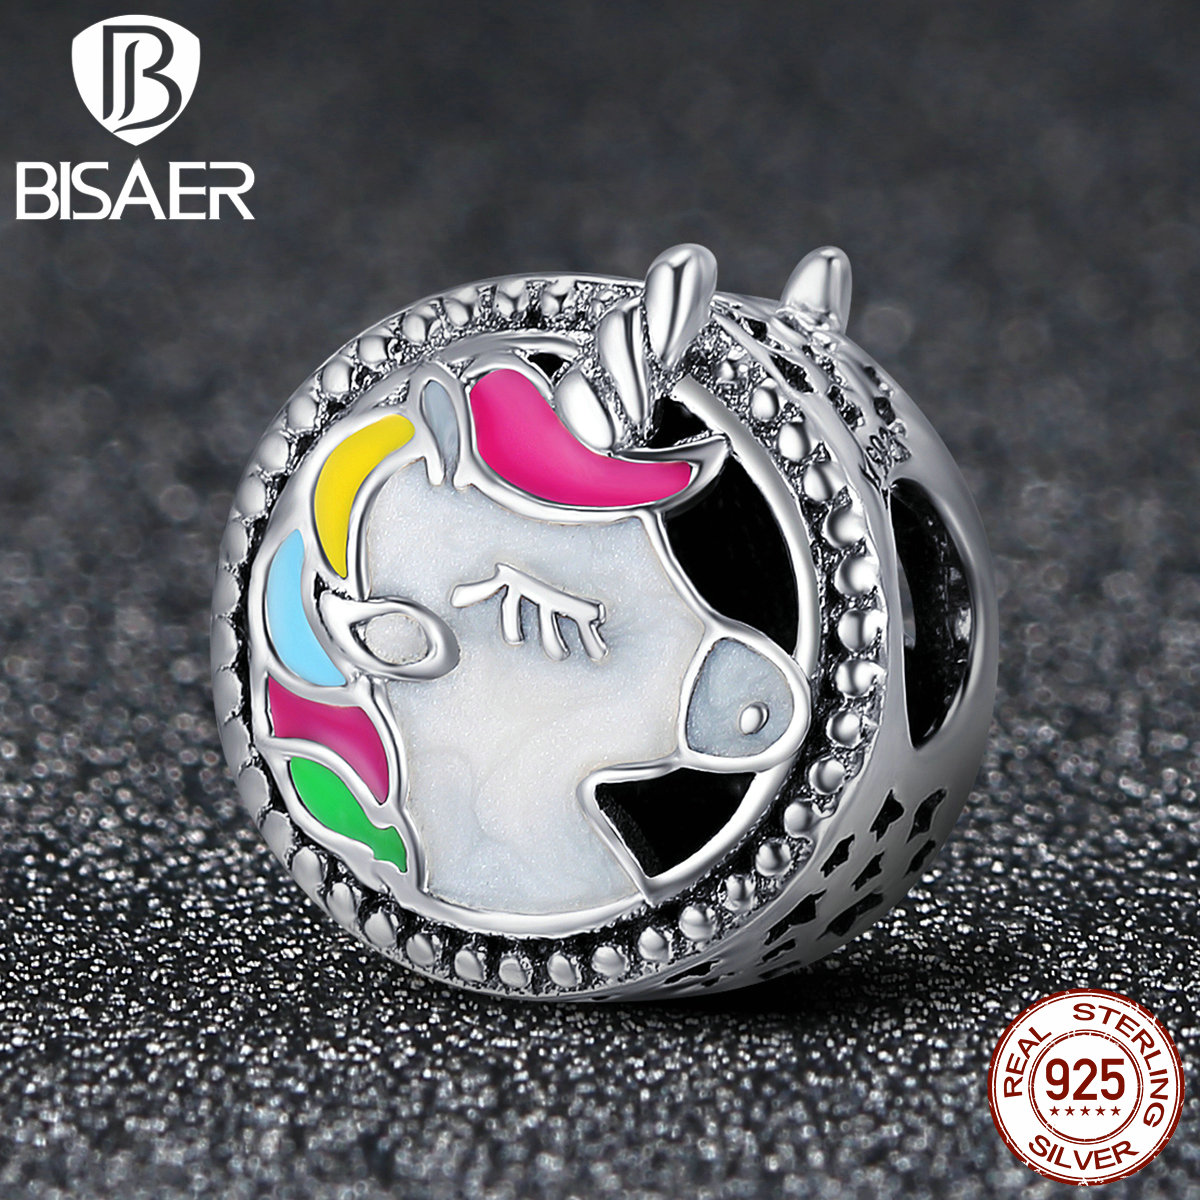 Authentic 100% 925 Sterling Silver Round Shape Animal Licorne Charms Beads Fit Charms Bracelet 925 Silver charm Original Jewelry